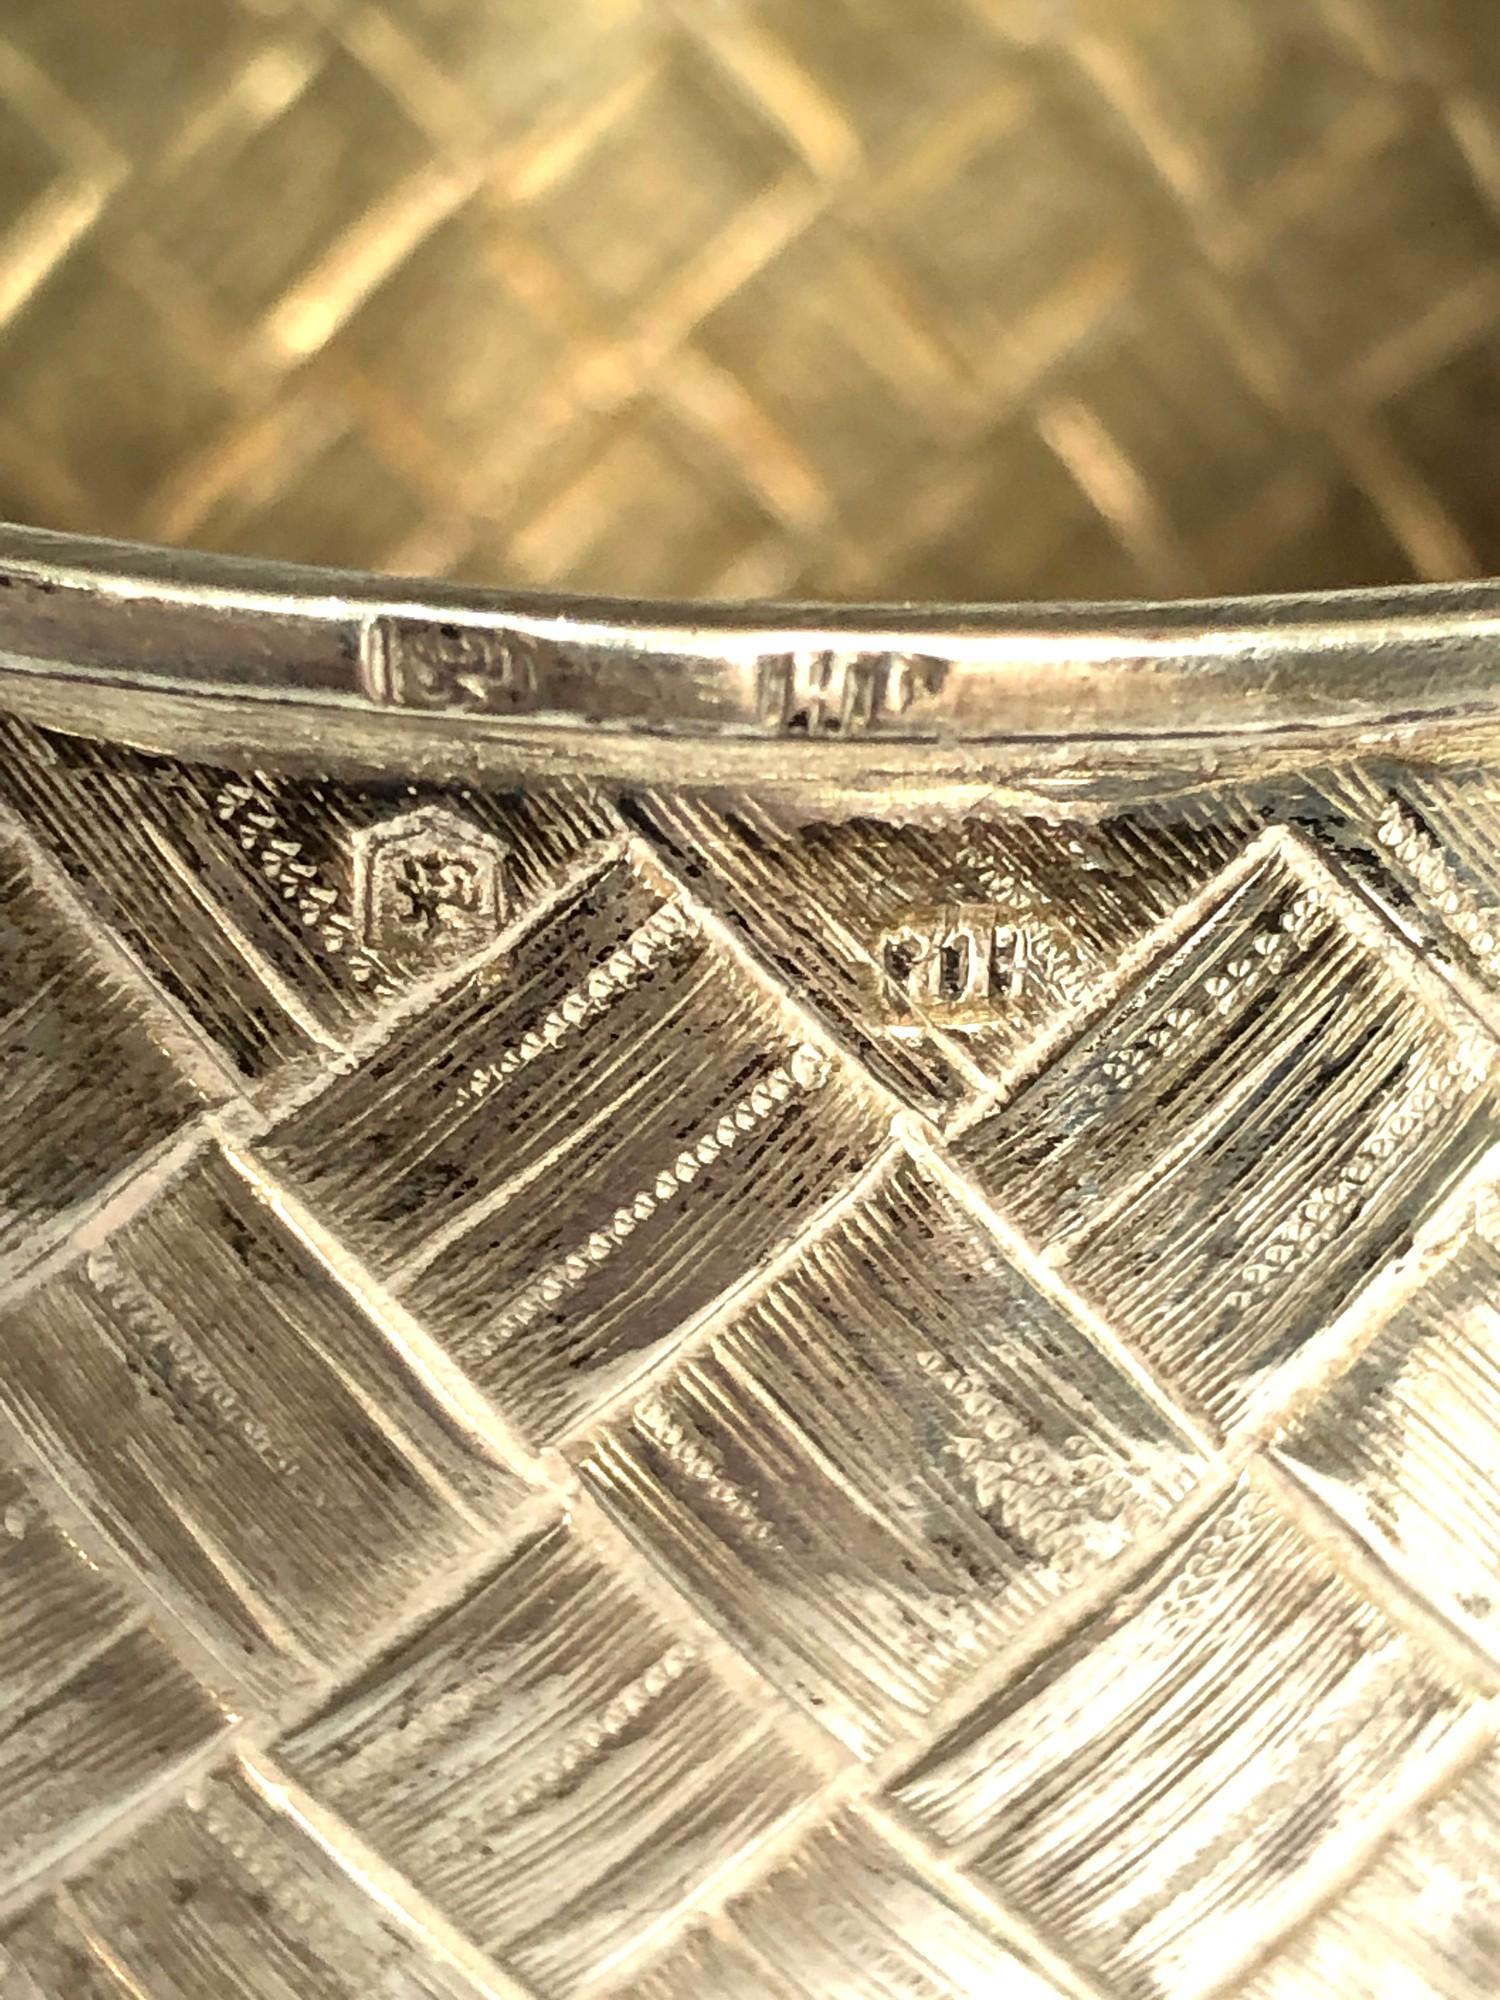 Antique 1877 Russian silver cup lattice work design measures approx height 10cm cup dia 7.5cm full - Image 5 of 7